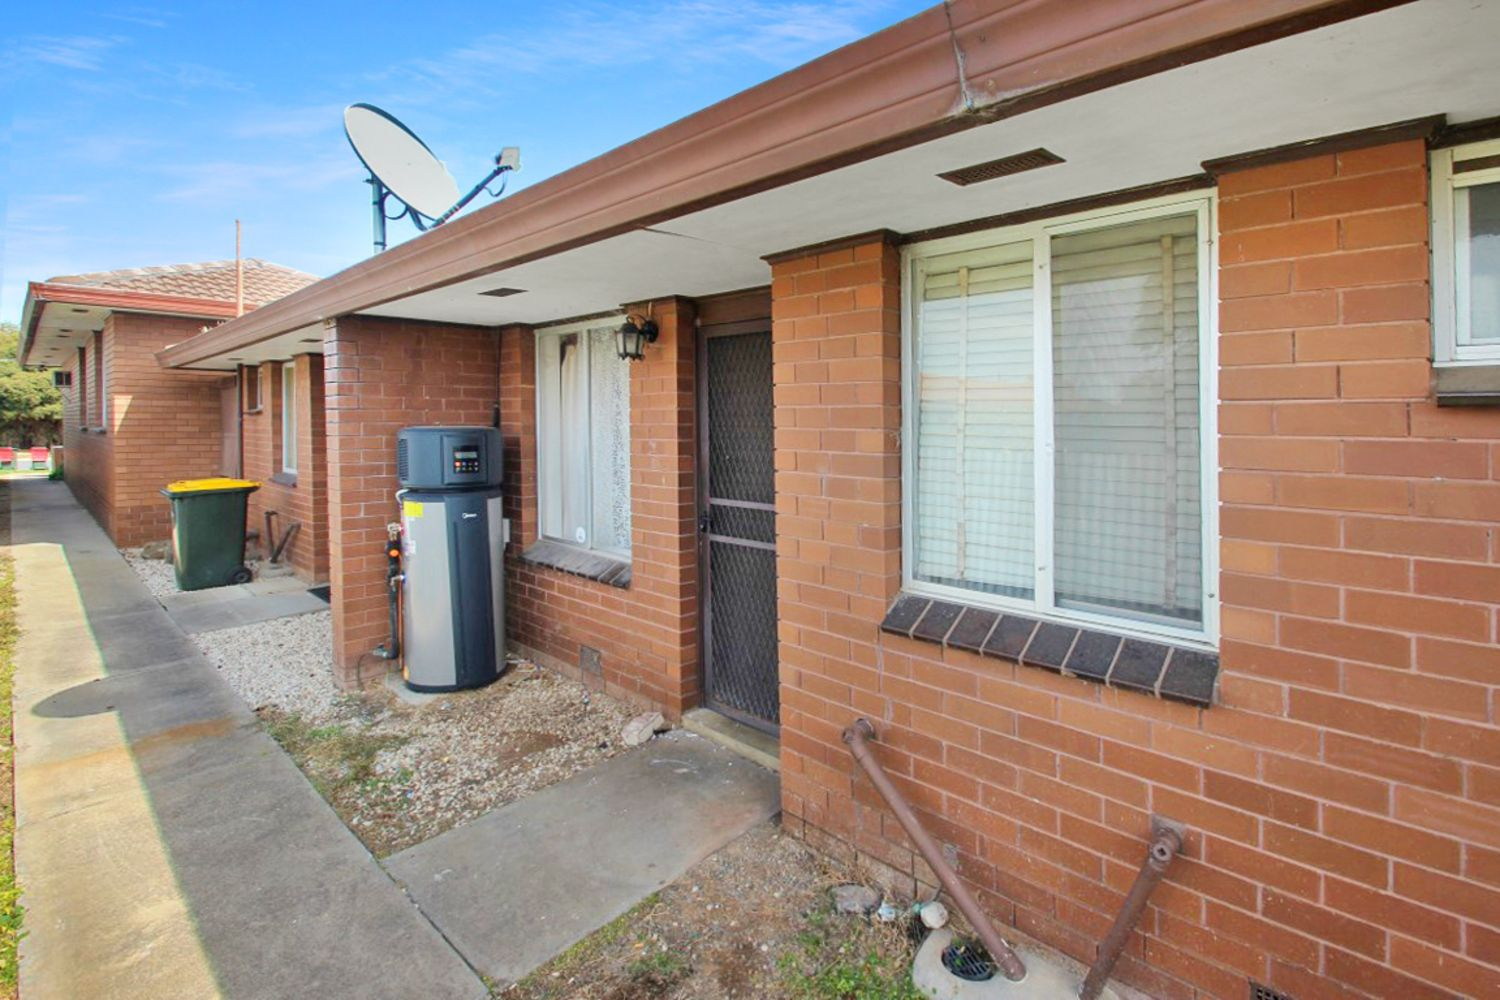 3/32 Brougham Street, Maryborough VIC 3465, Image 1